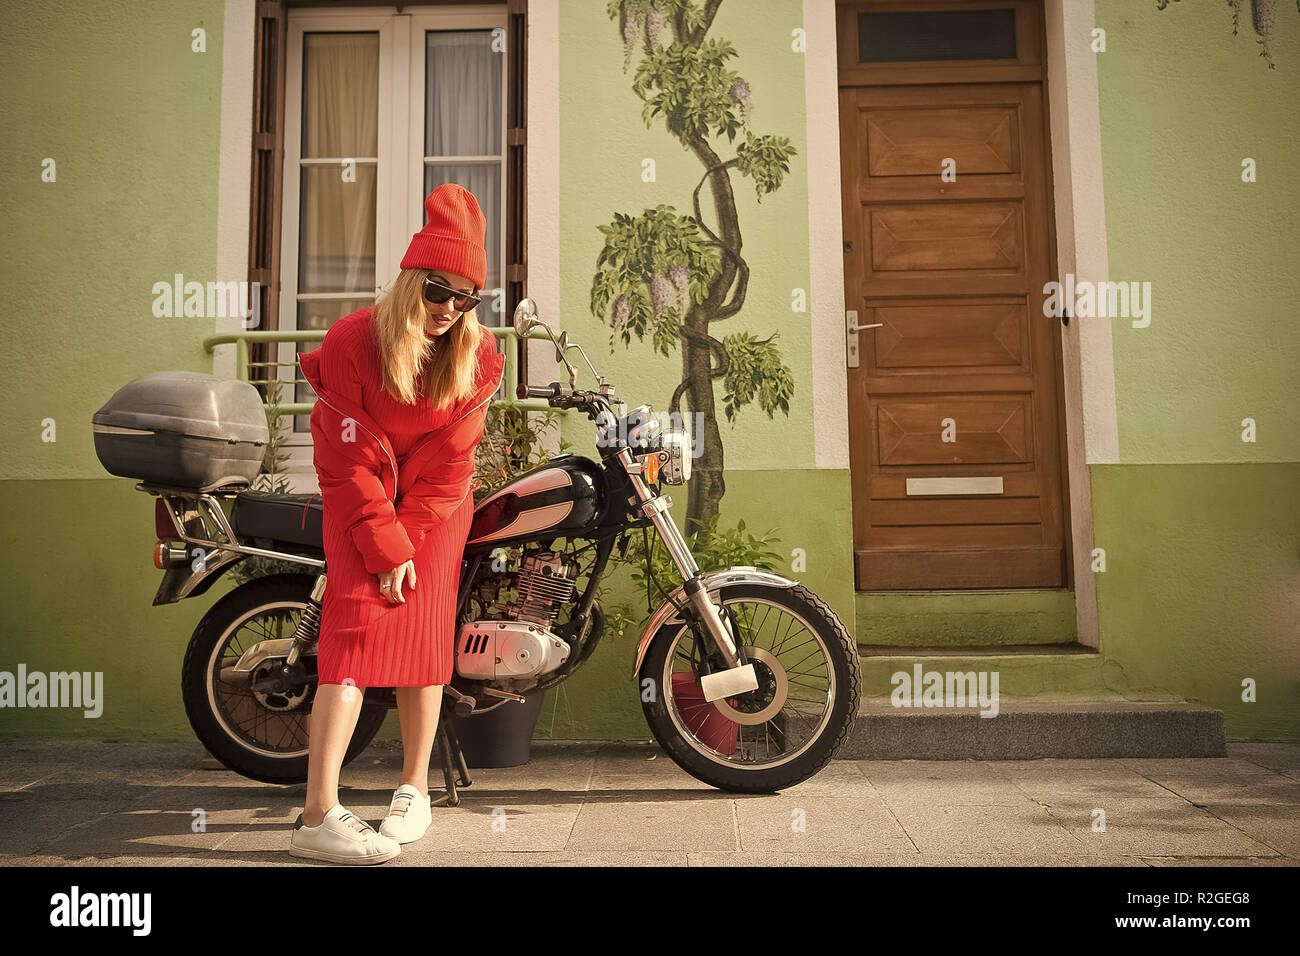 girl in fashionable red dress, hat and glasses, france. Woman biker at bike transport. Look and retro style. parisian fashion model near house and motorcycle. Beauty and vintage fashion. - Stock Image